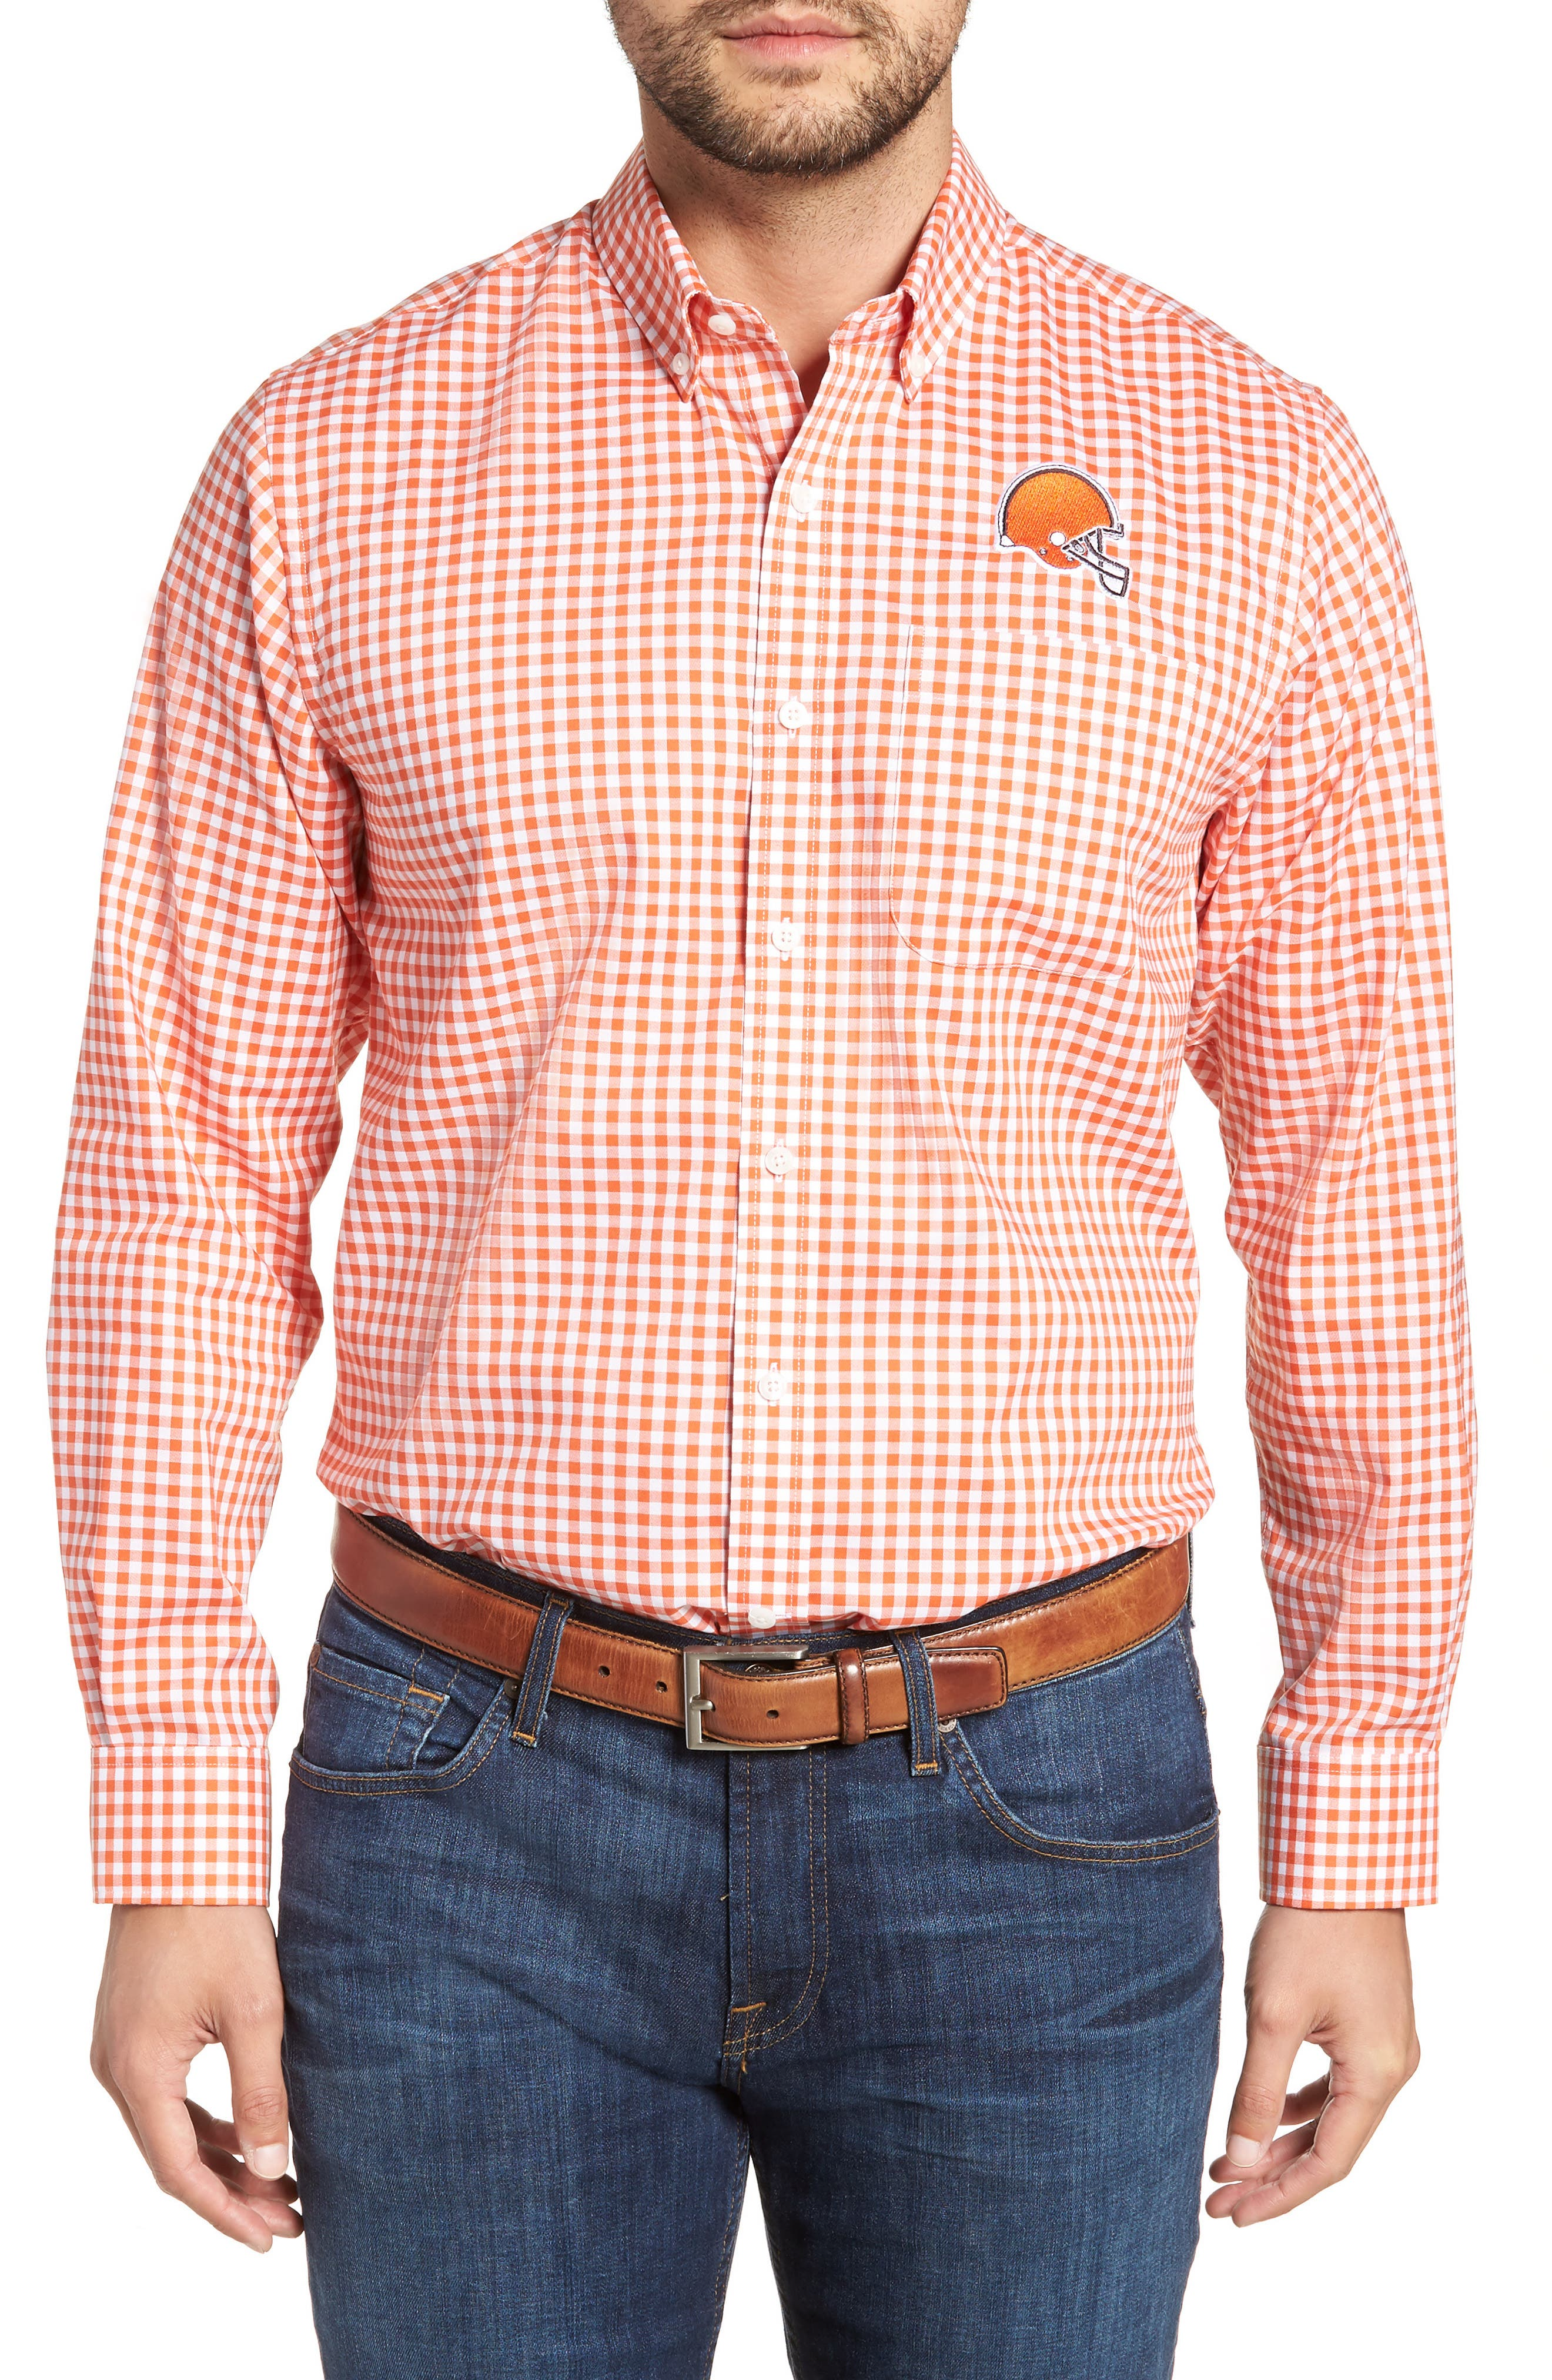 League Cleveland Browns Regular Fit Shirt,                         Main,                         color, COLLEGE ORANGE